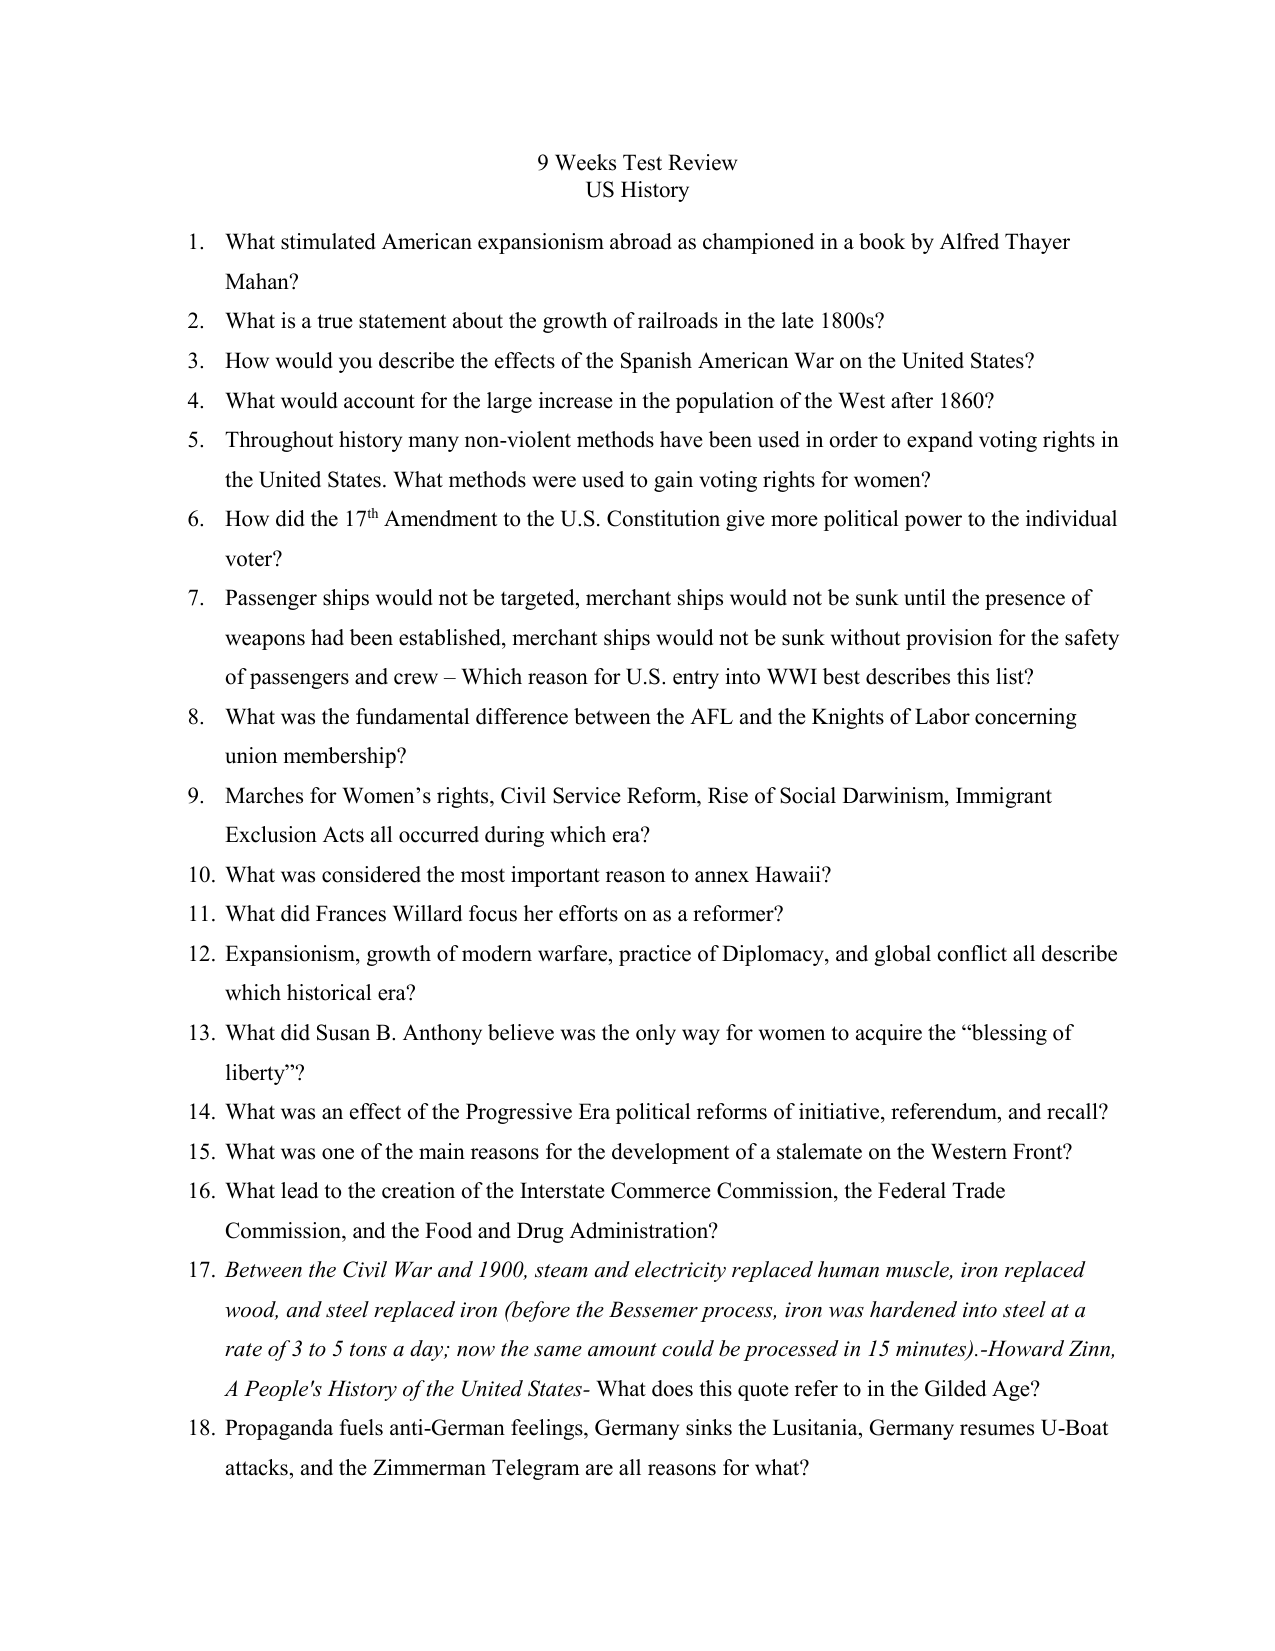 worksheet Progressive Era Worksheets workbooks progressive era worksheets free printable 9 weeks test review us history what stimulated american worksheets